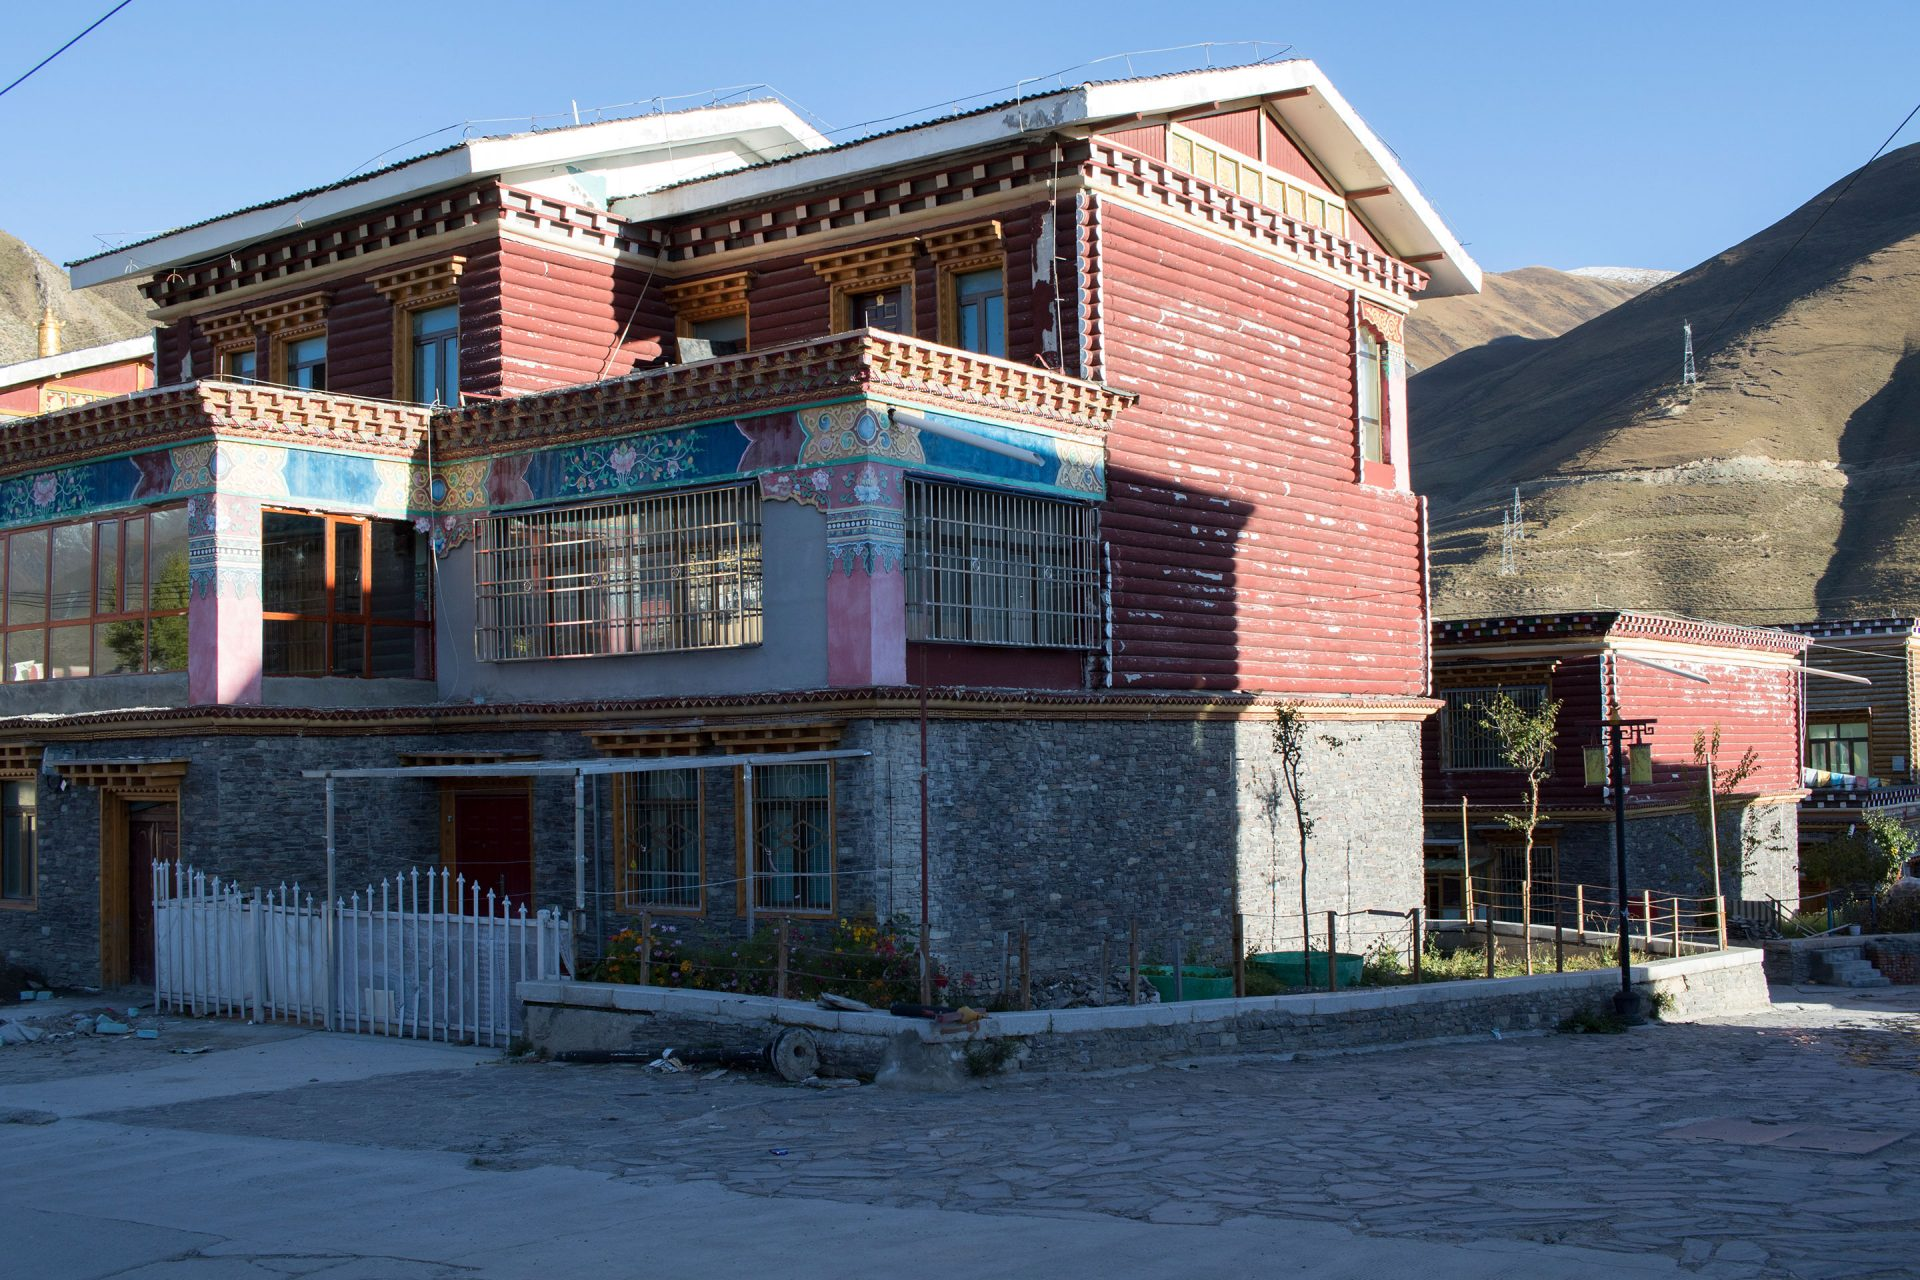 Remnants of old Tibetan style buildings that survived the devastating earthquake.